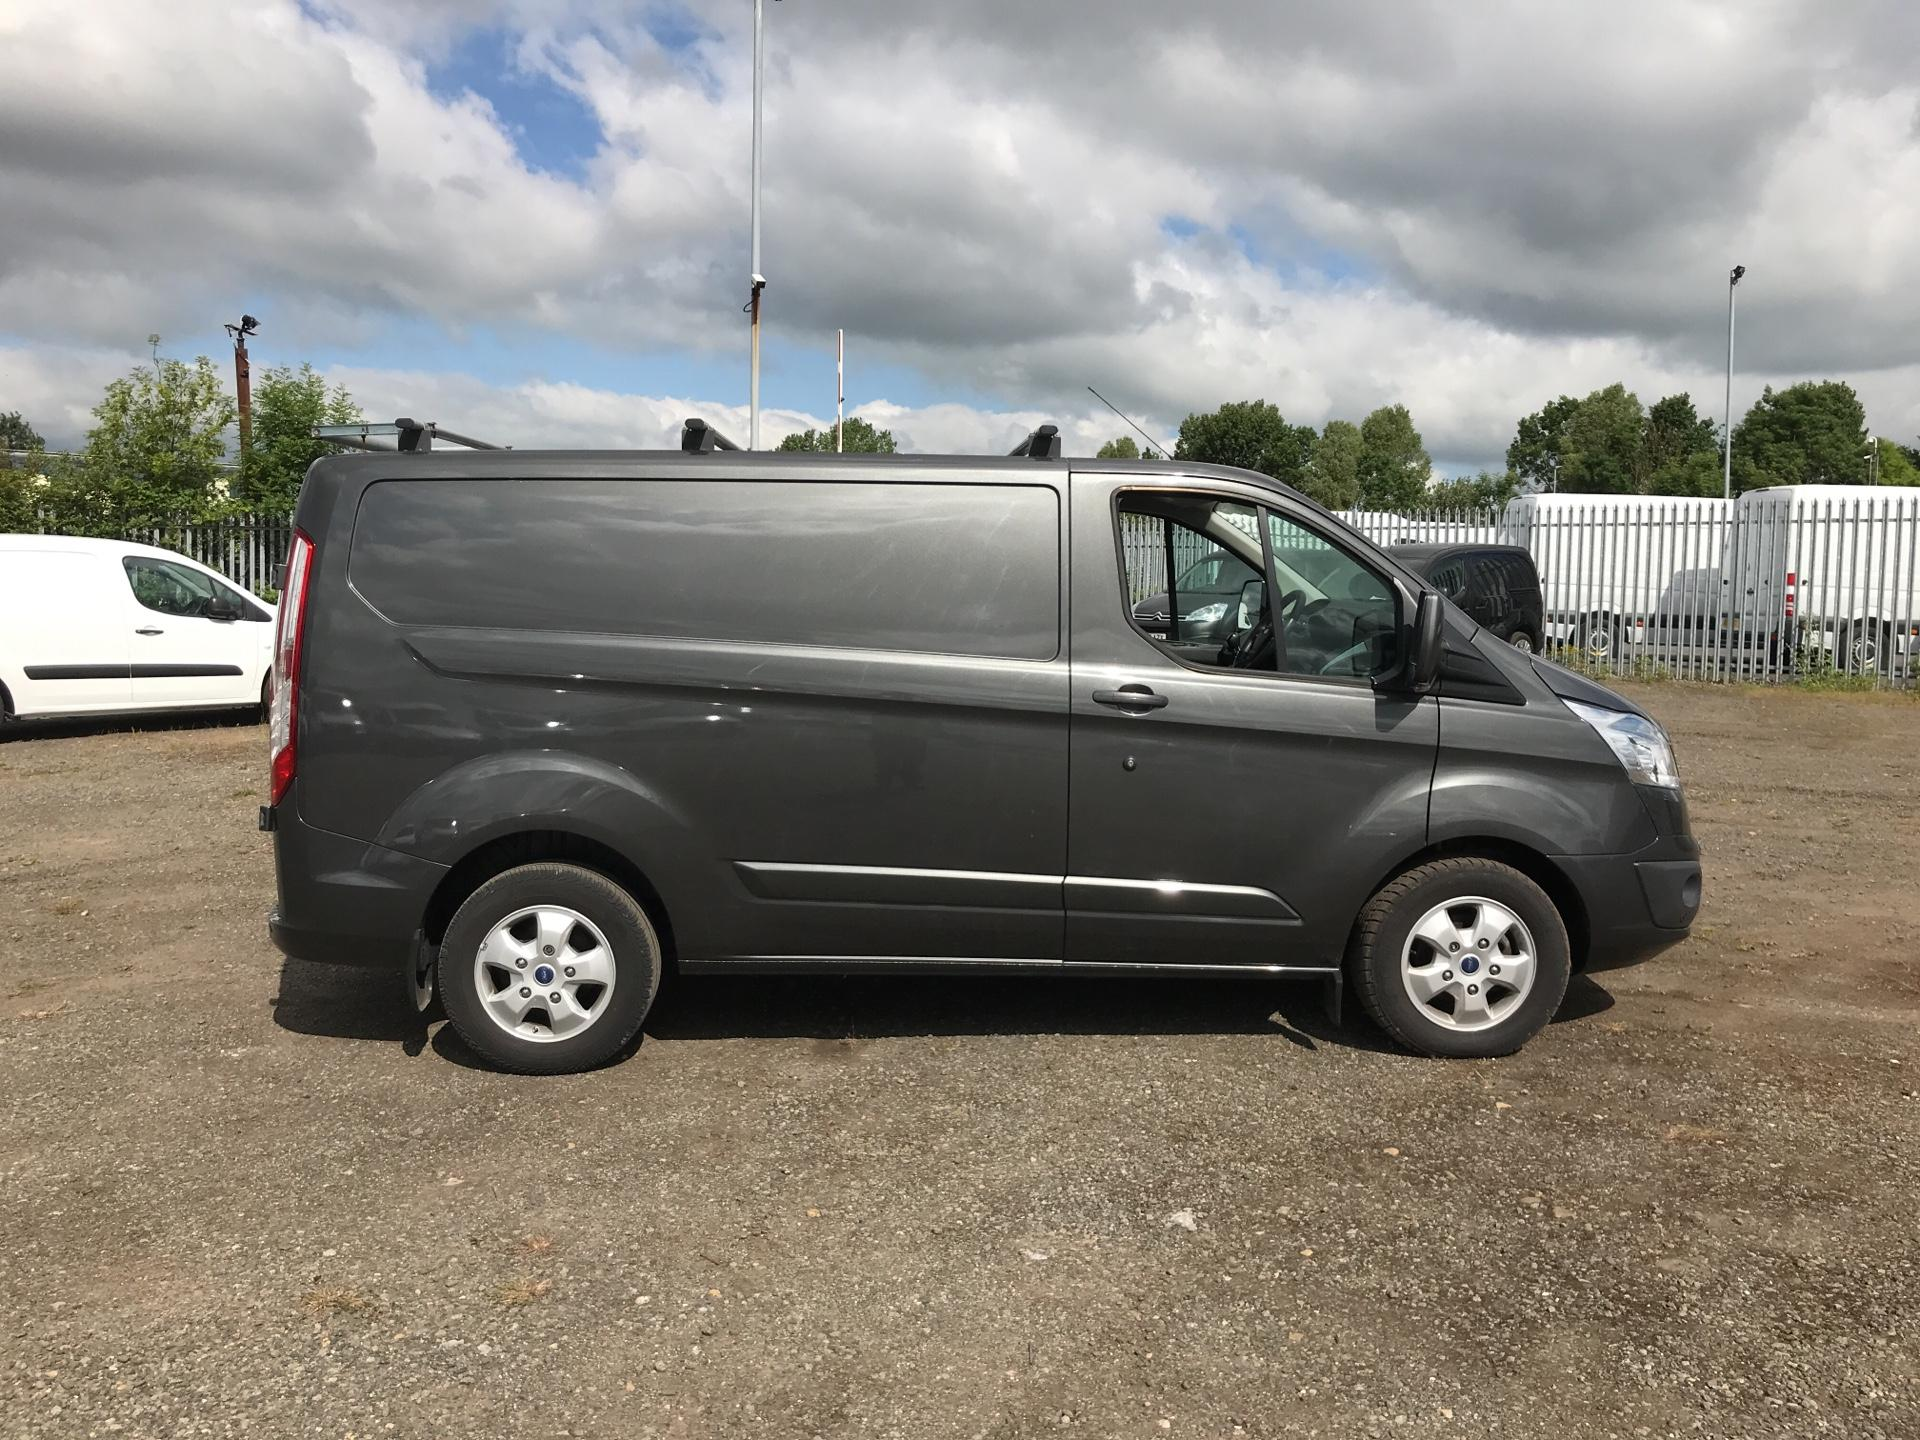 2016 Ford Transit Custom 290 L1 DIESEL FWD 2.2 TDCI 125PS LOW ROOF LIMITED VAN EURO 5 (YP16TZS) Image 2